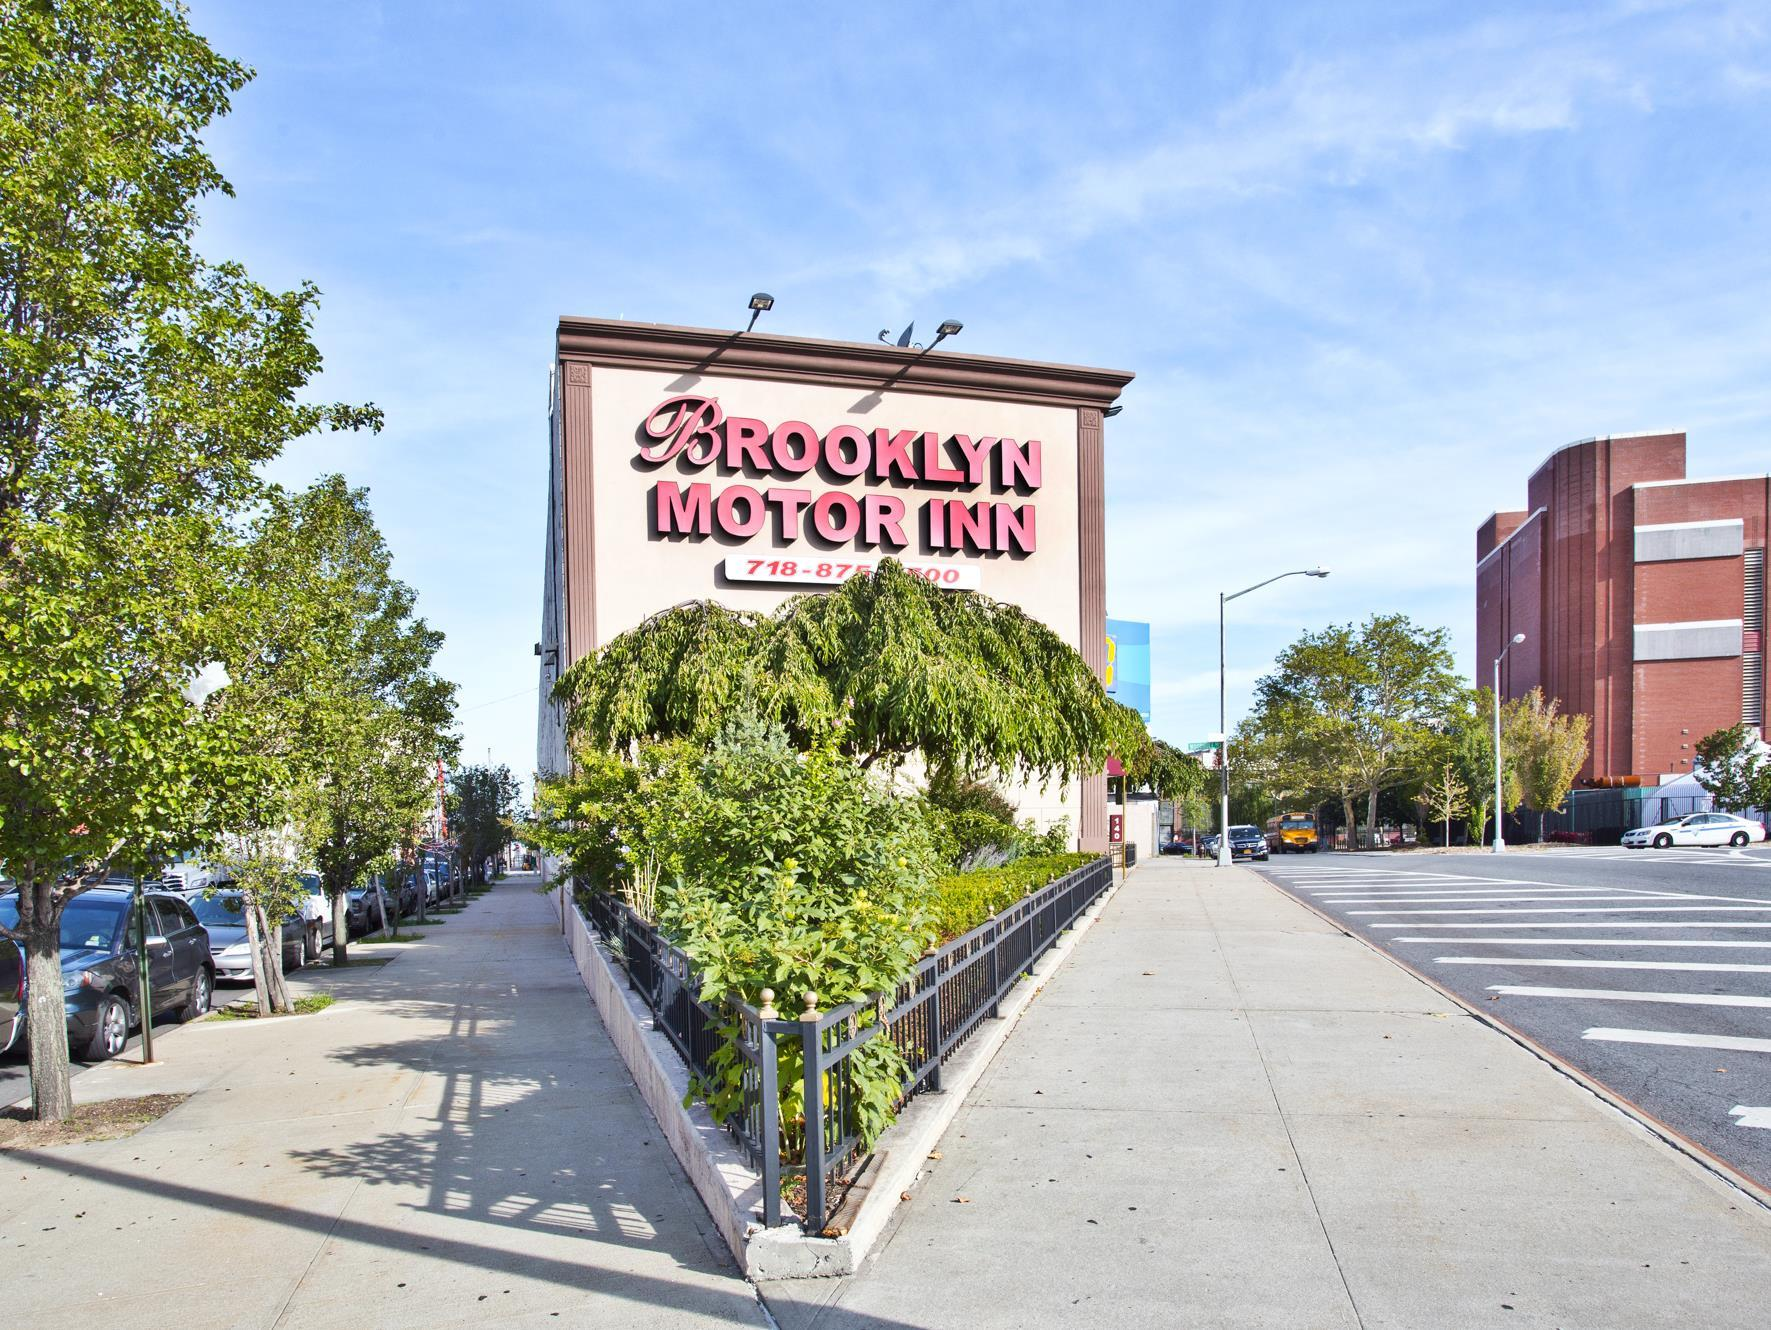 Brooklyn Motor Inn - Hotel and accommodation in Usa in New York (NY)